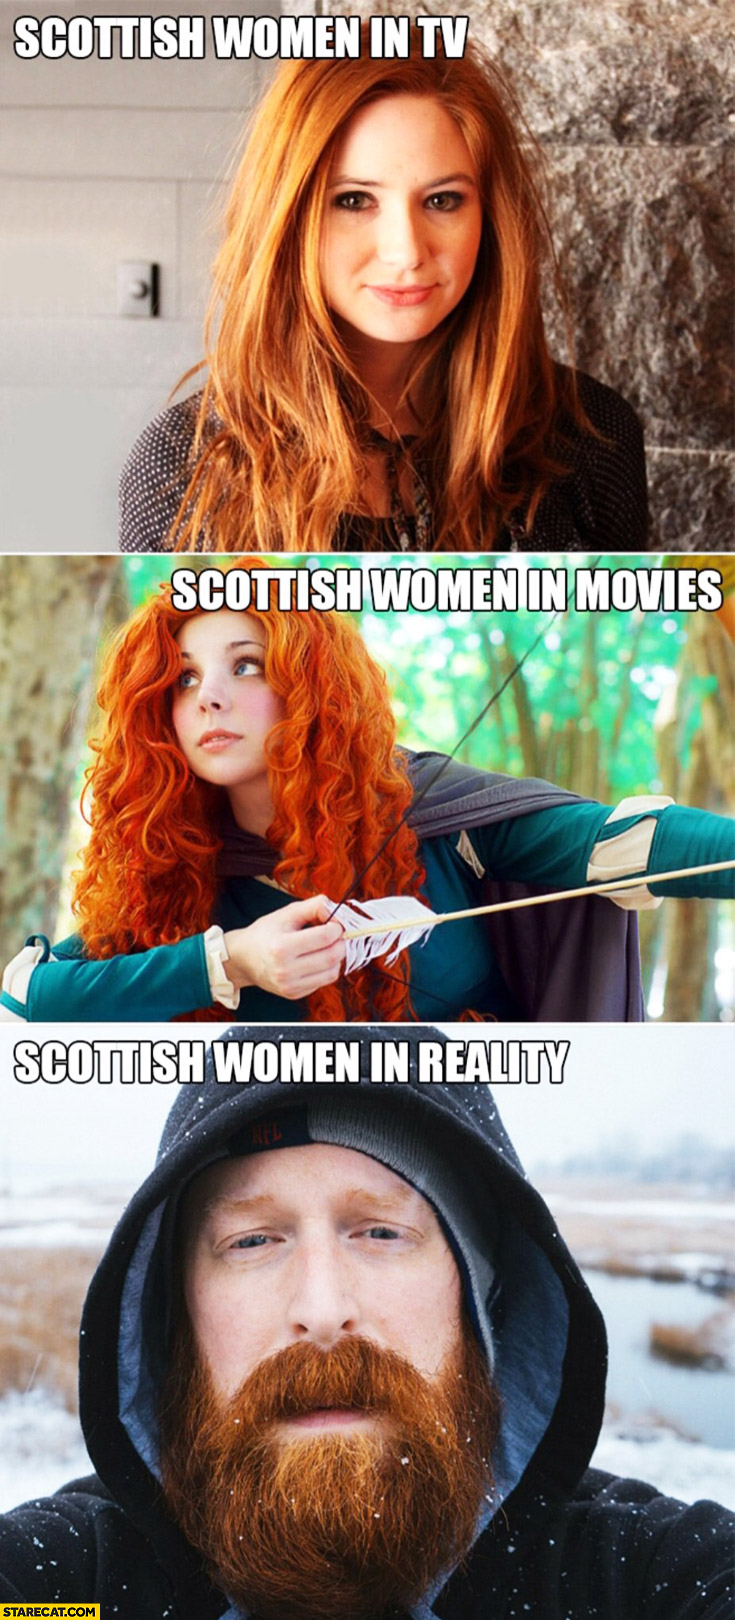 Scottish women in TV, in movies cute ginger, in reality bearded man